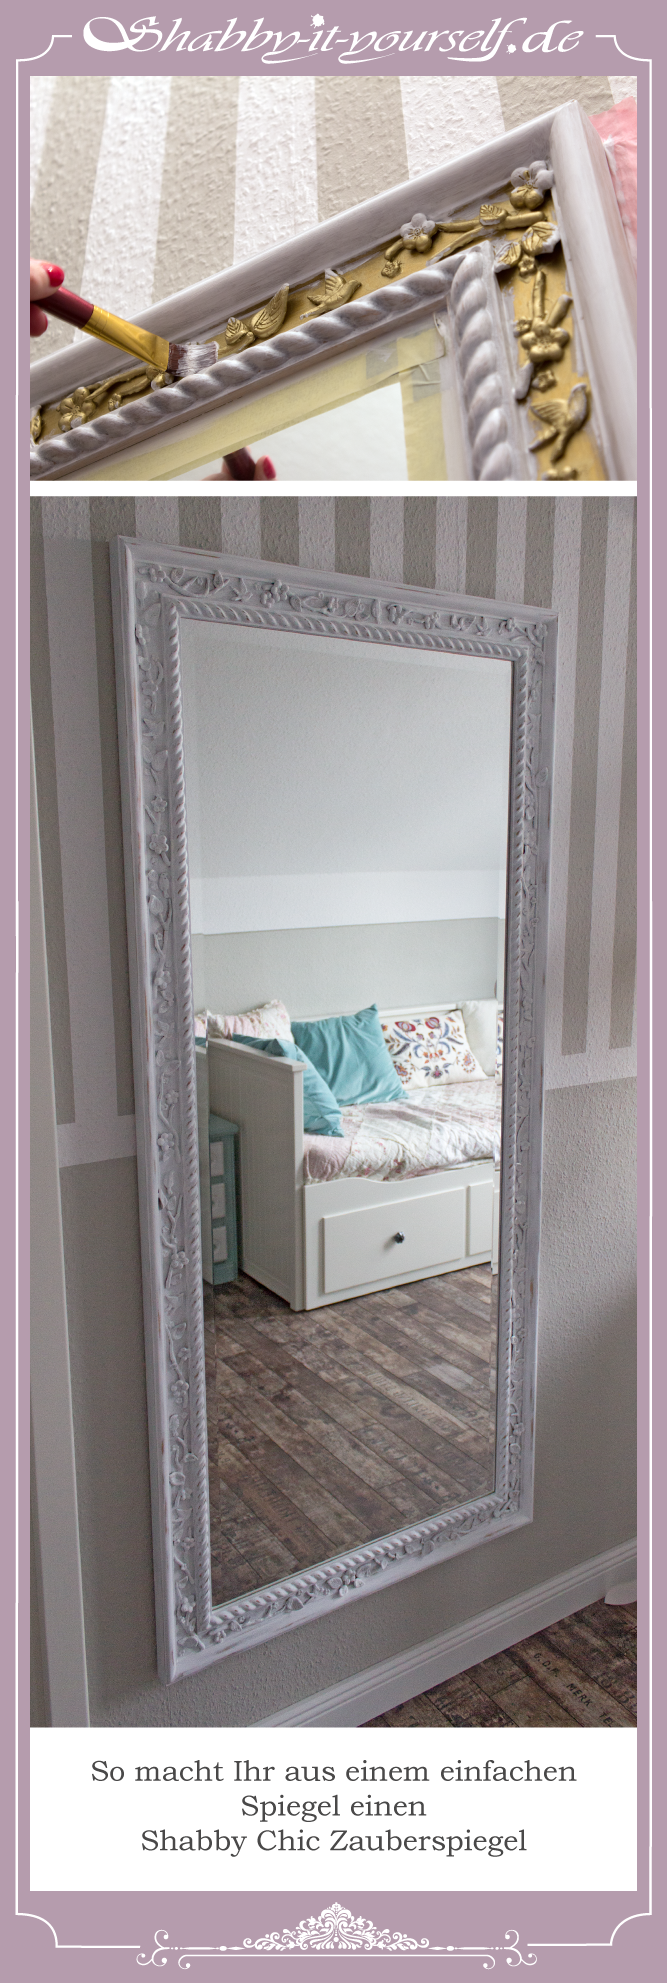 pin von shabby it yourself auf siy spiegel mirror spiegel wei romantisches shabby chic und. Black Bedroom Furniture Sets. Home Design Ideas